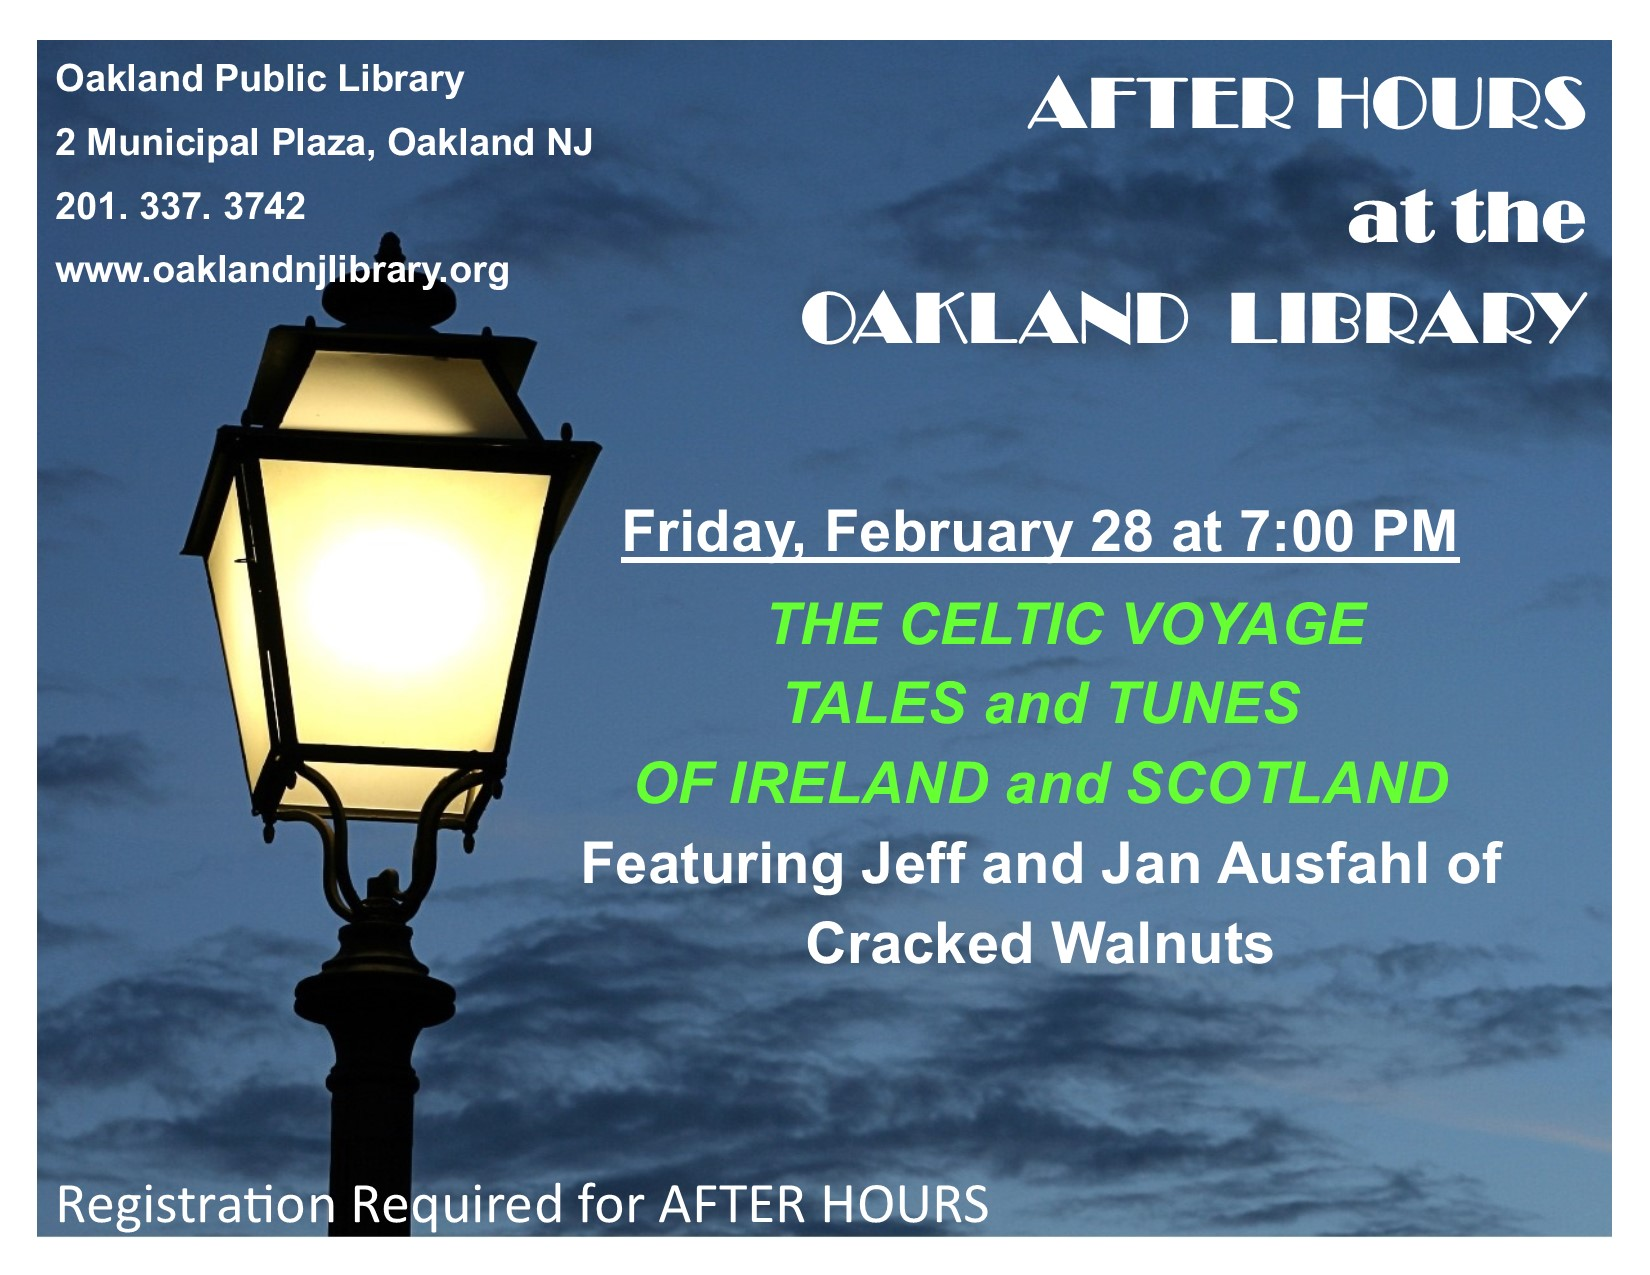 The Celtic Voyage with Jeff and Jan Ausfahl